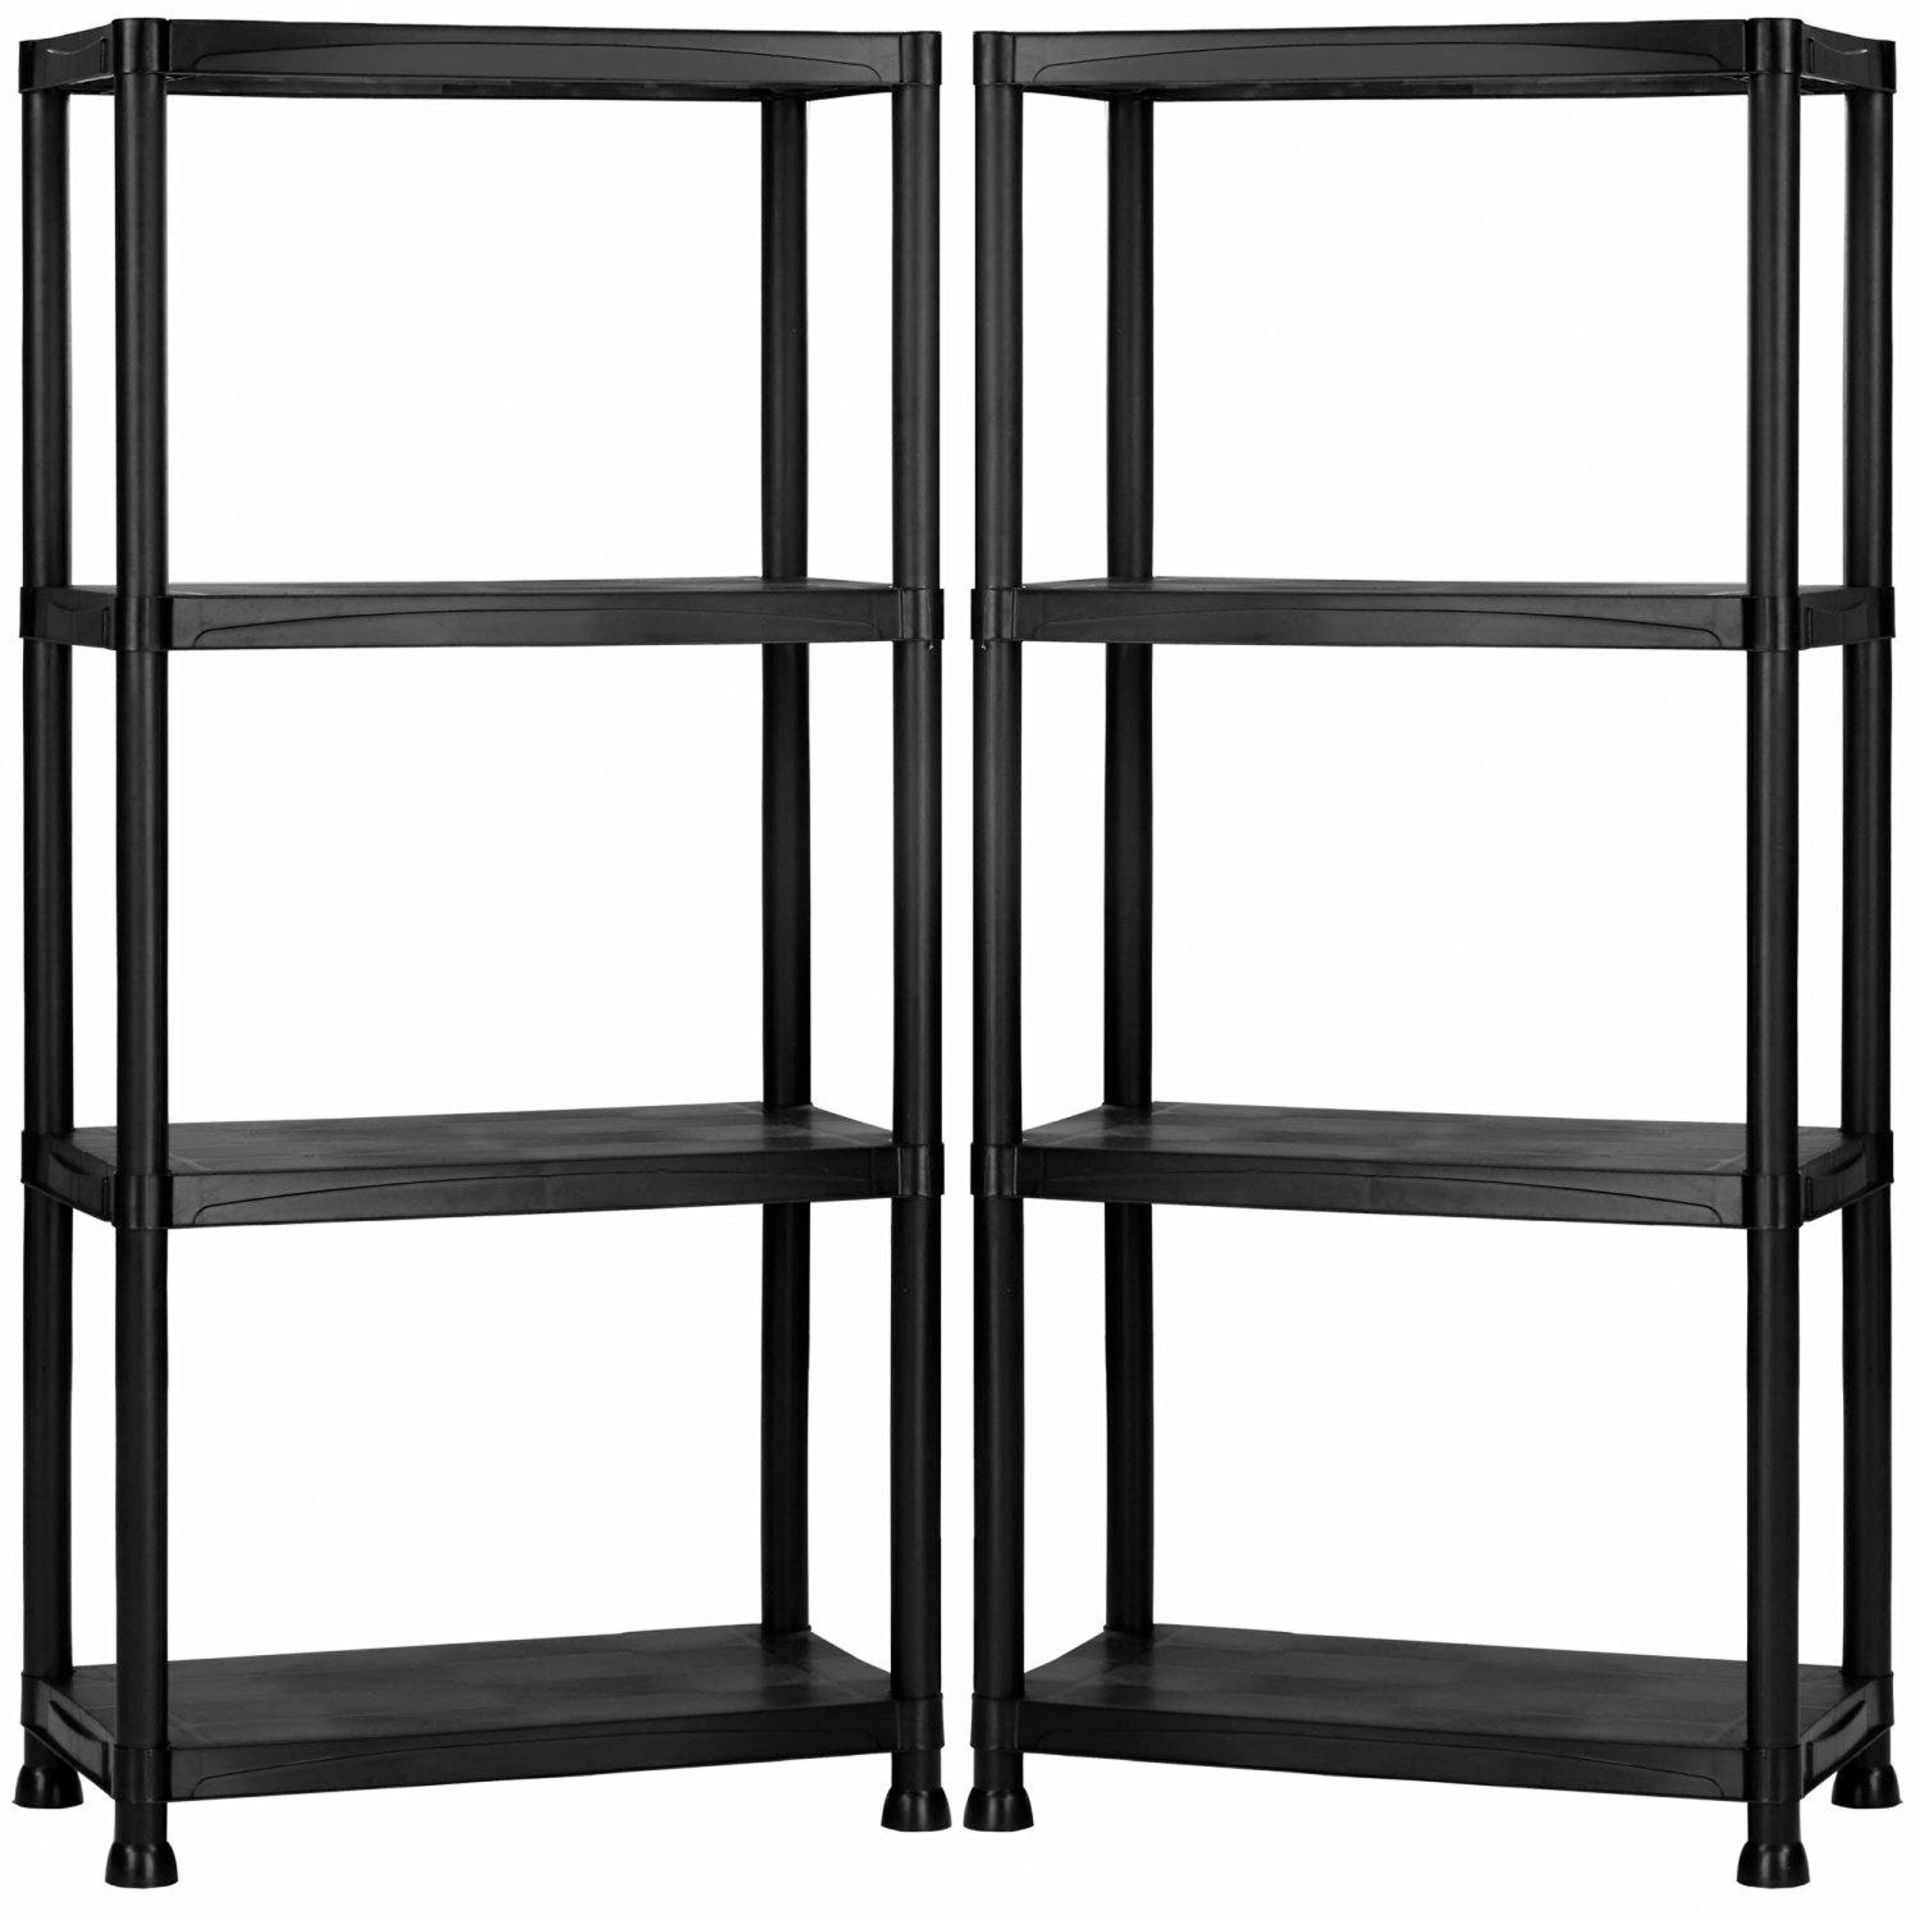 Lot 31 - (RU23) 4 Tier Black Plastic Heavy Duty Shelving Racking Storage Unit The black plastic racki...